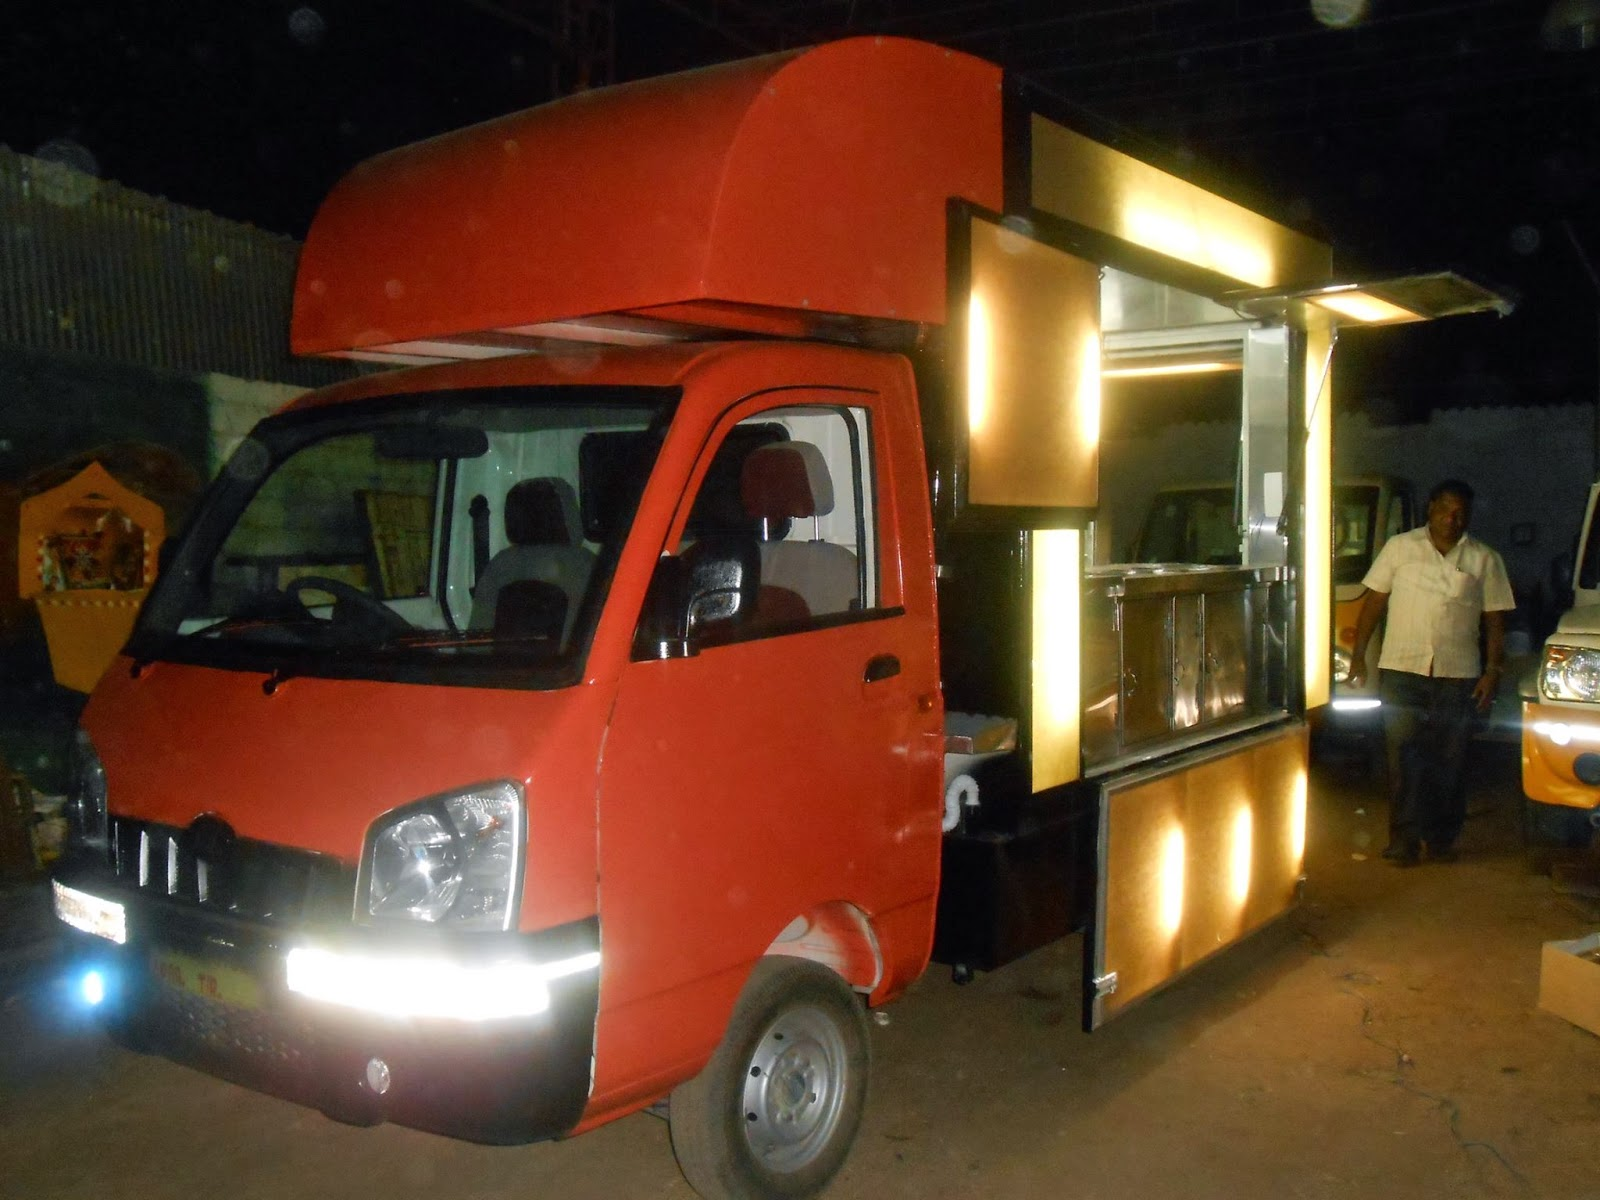 For A First Time Entrepreneur Into The Food Business Amount Of Thought Gone Building Vehicle And Operation Outlet Is Commendable